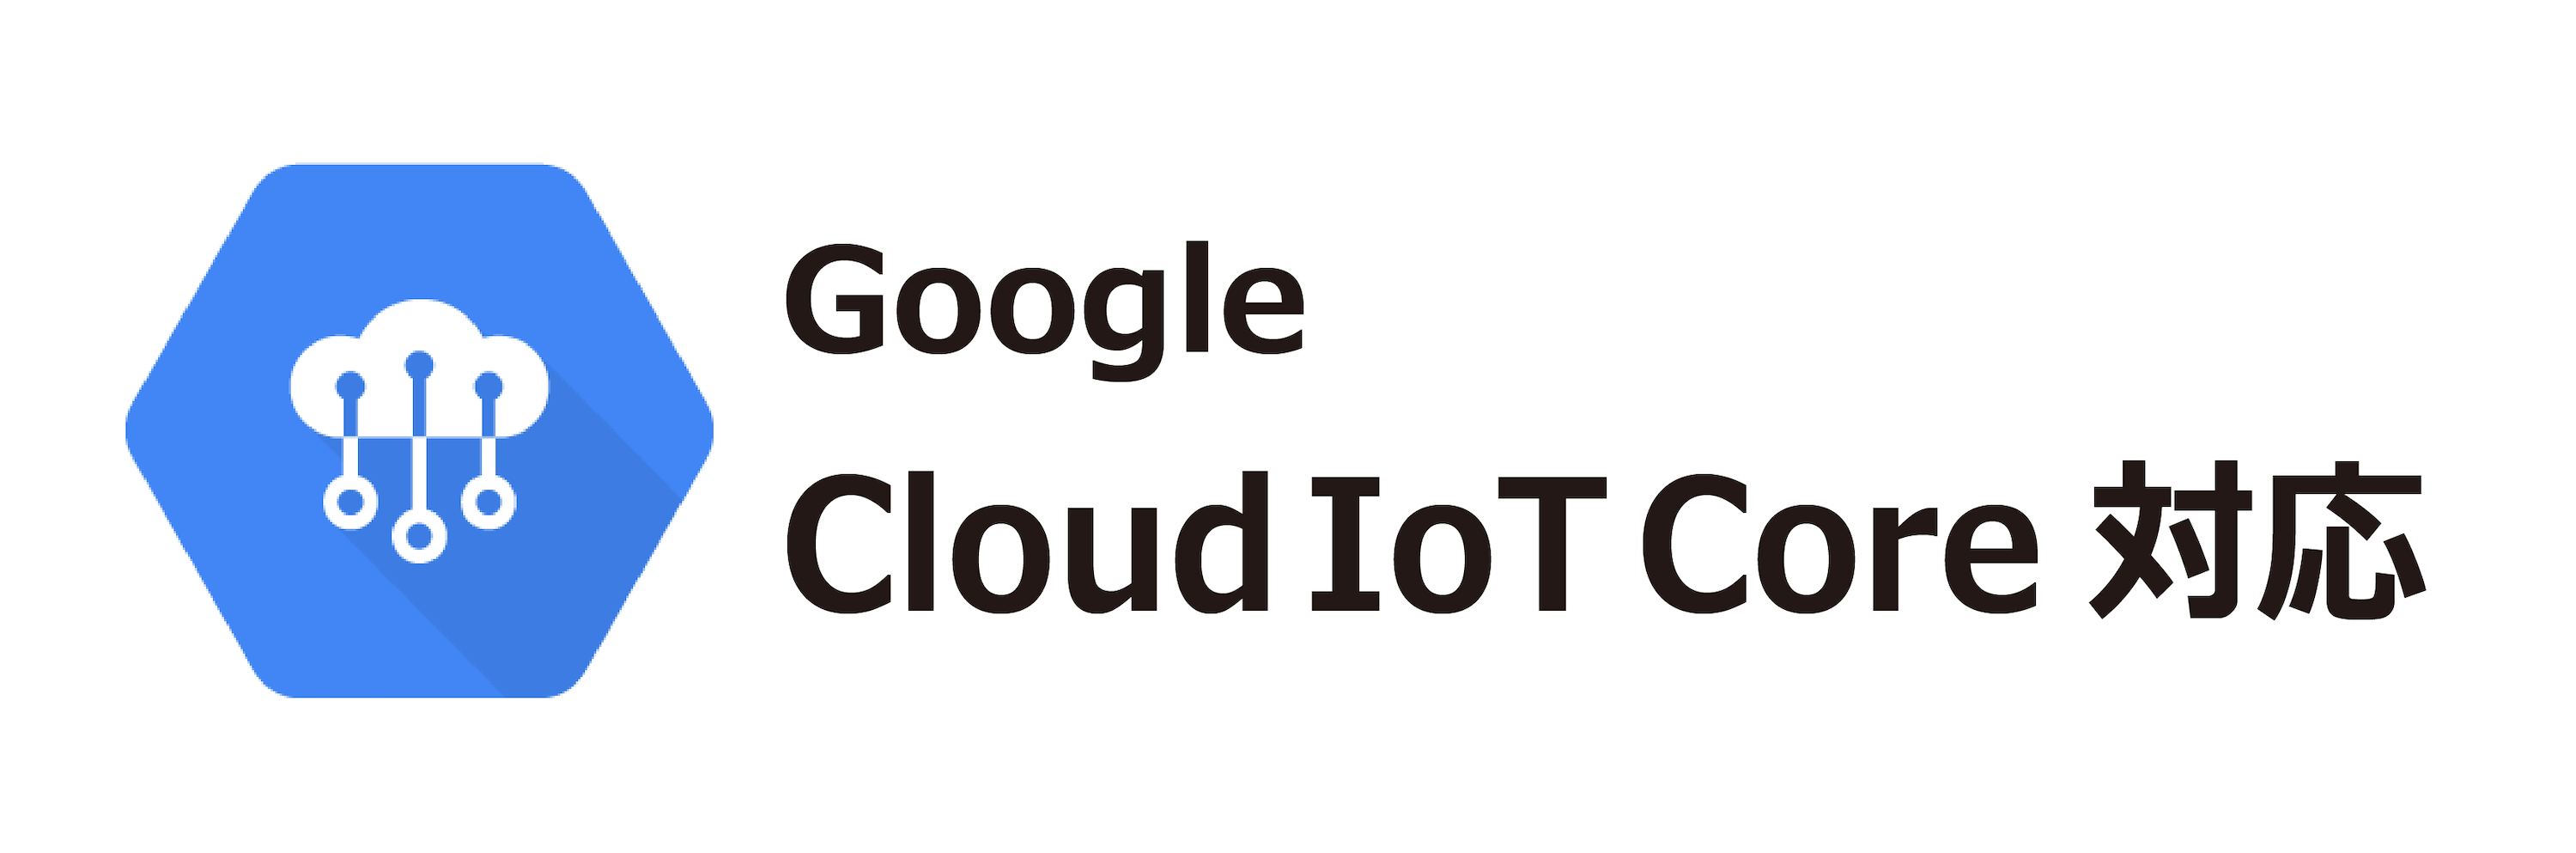 Google Cloud IoT Core対応